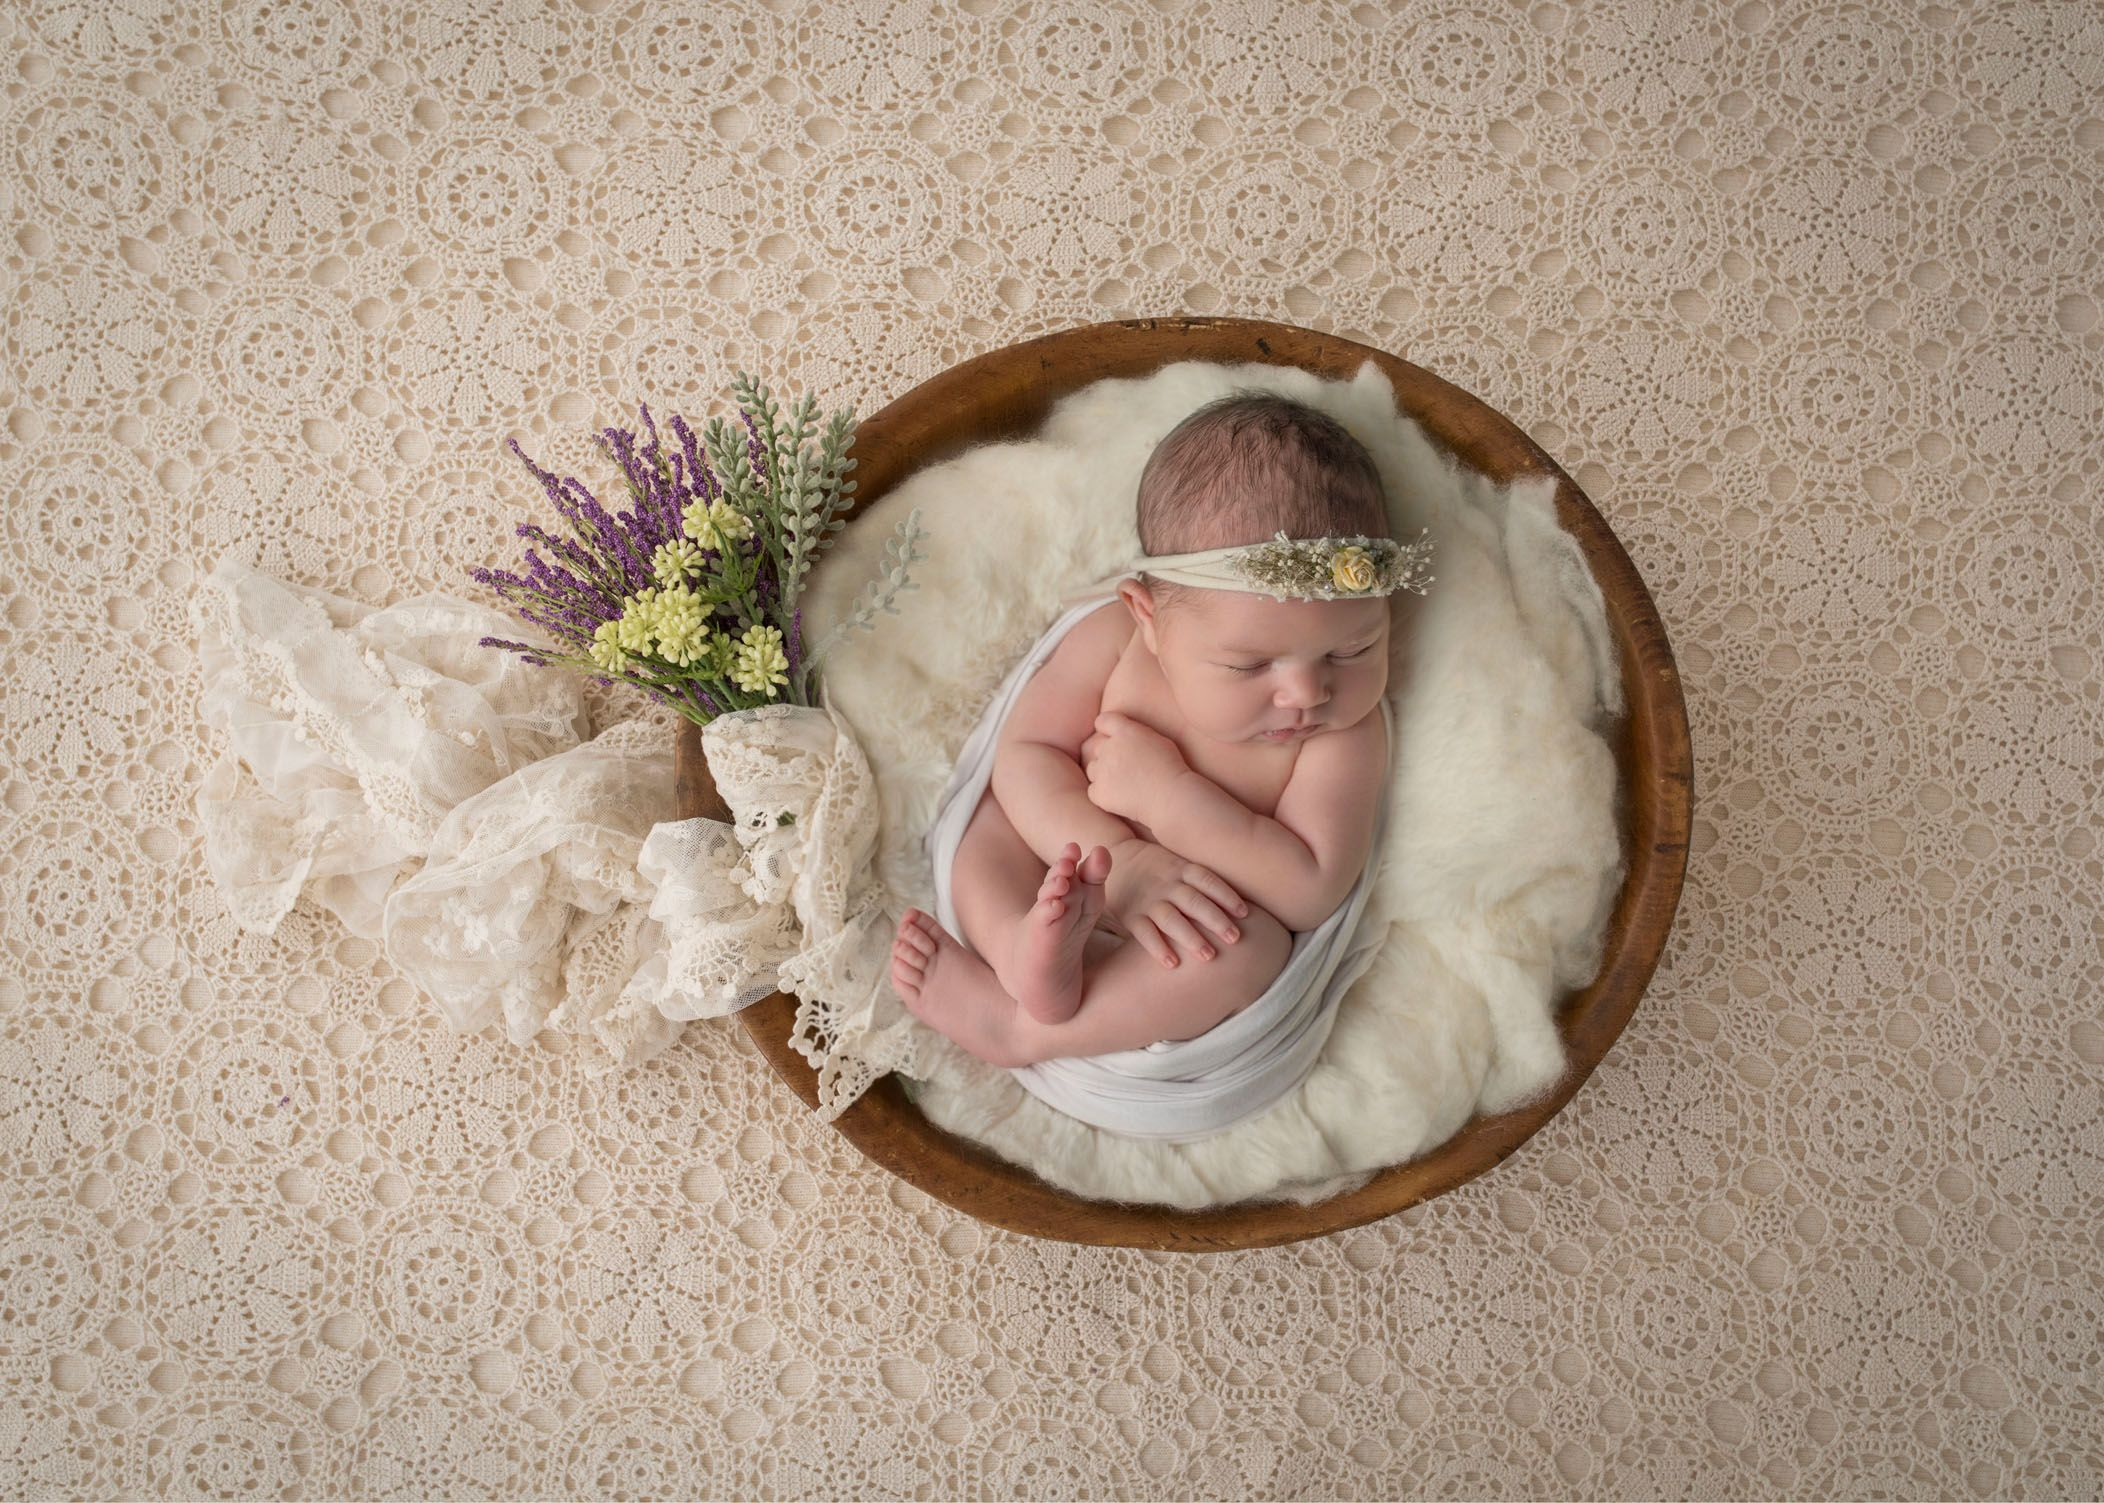 Newborn baby girl asleep in wooden bowl with flowers nearby